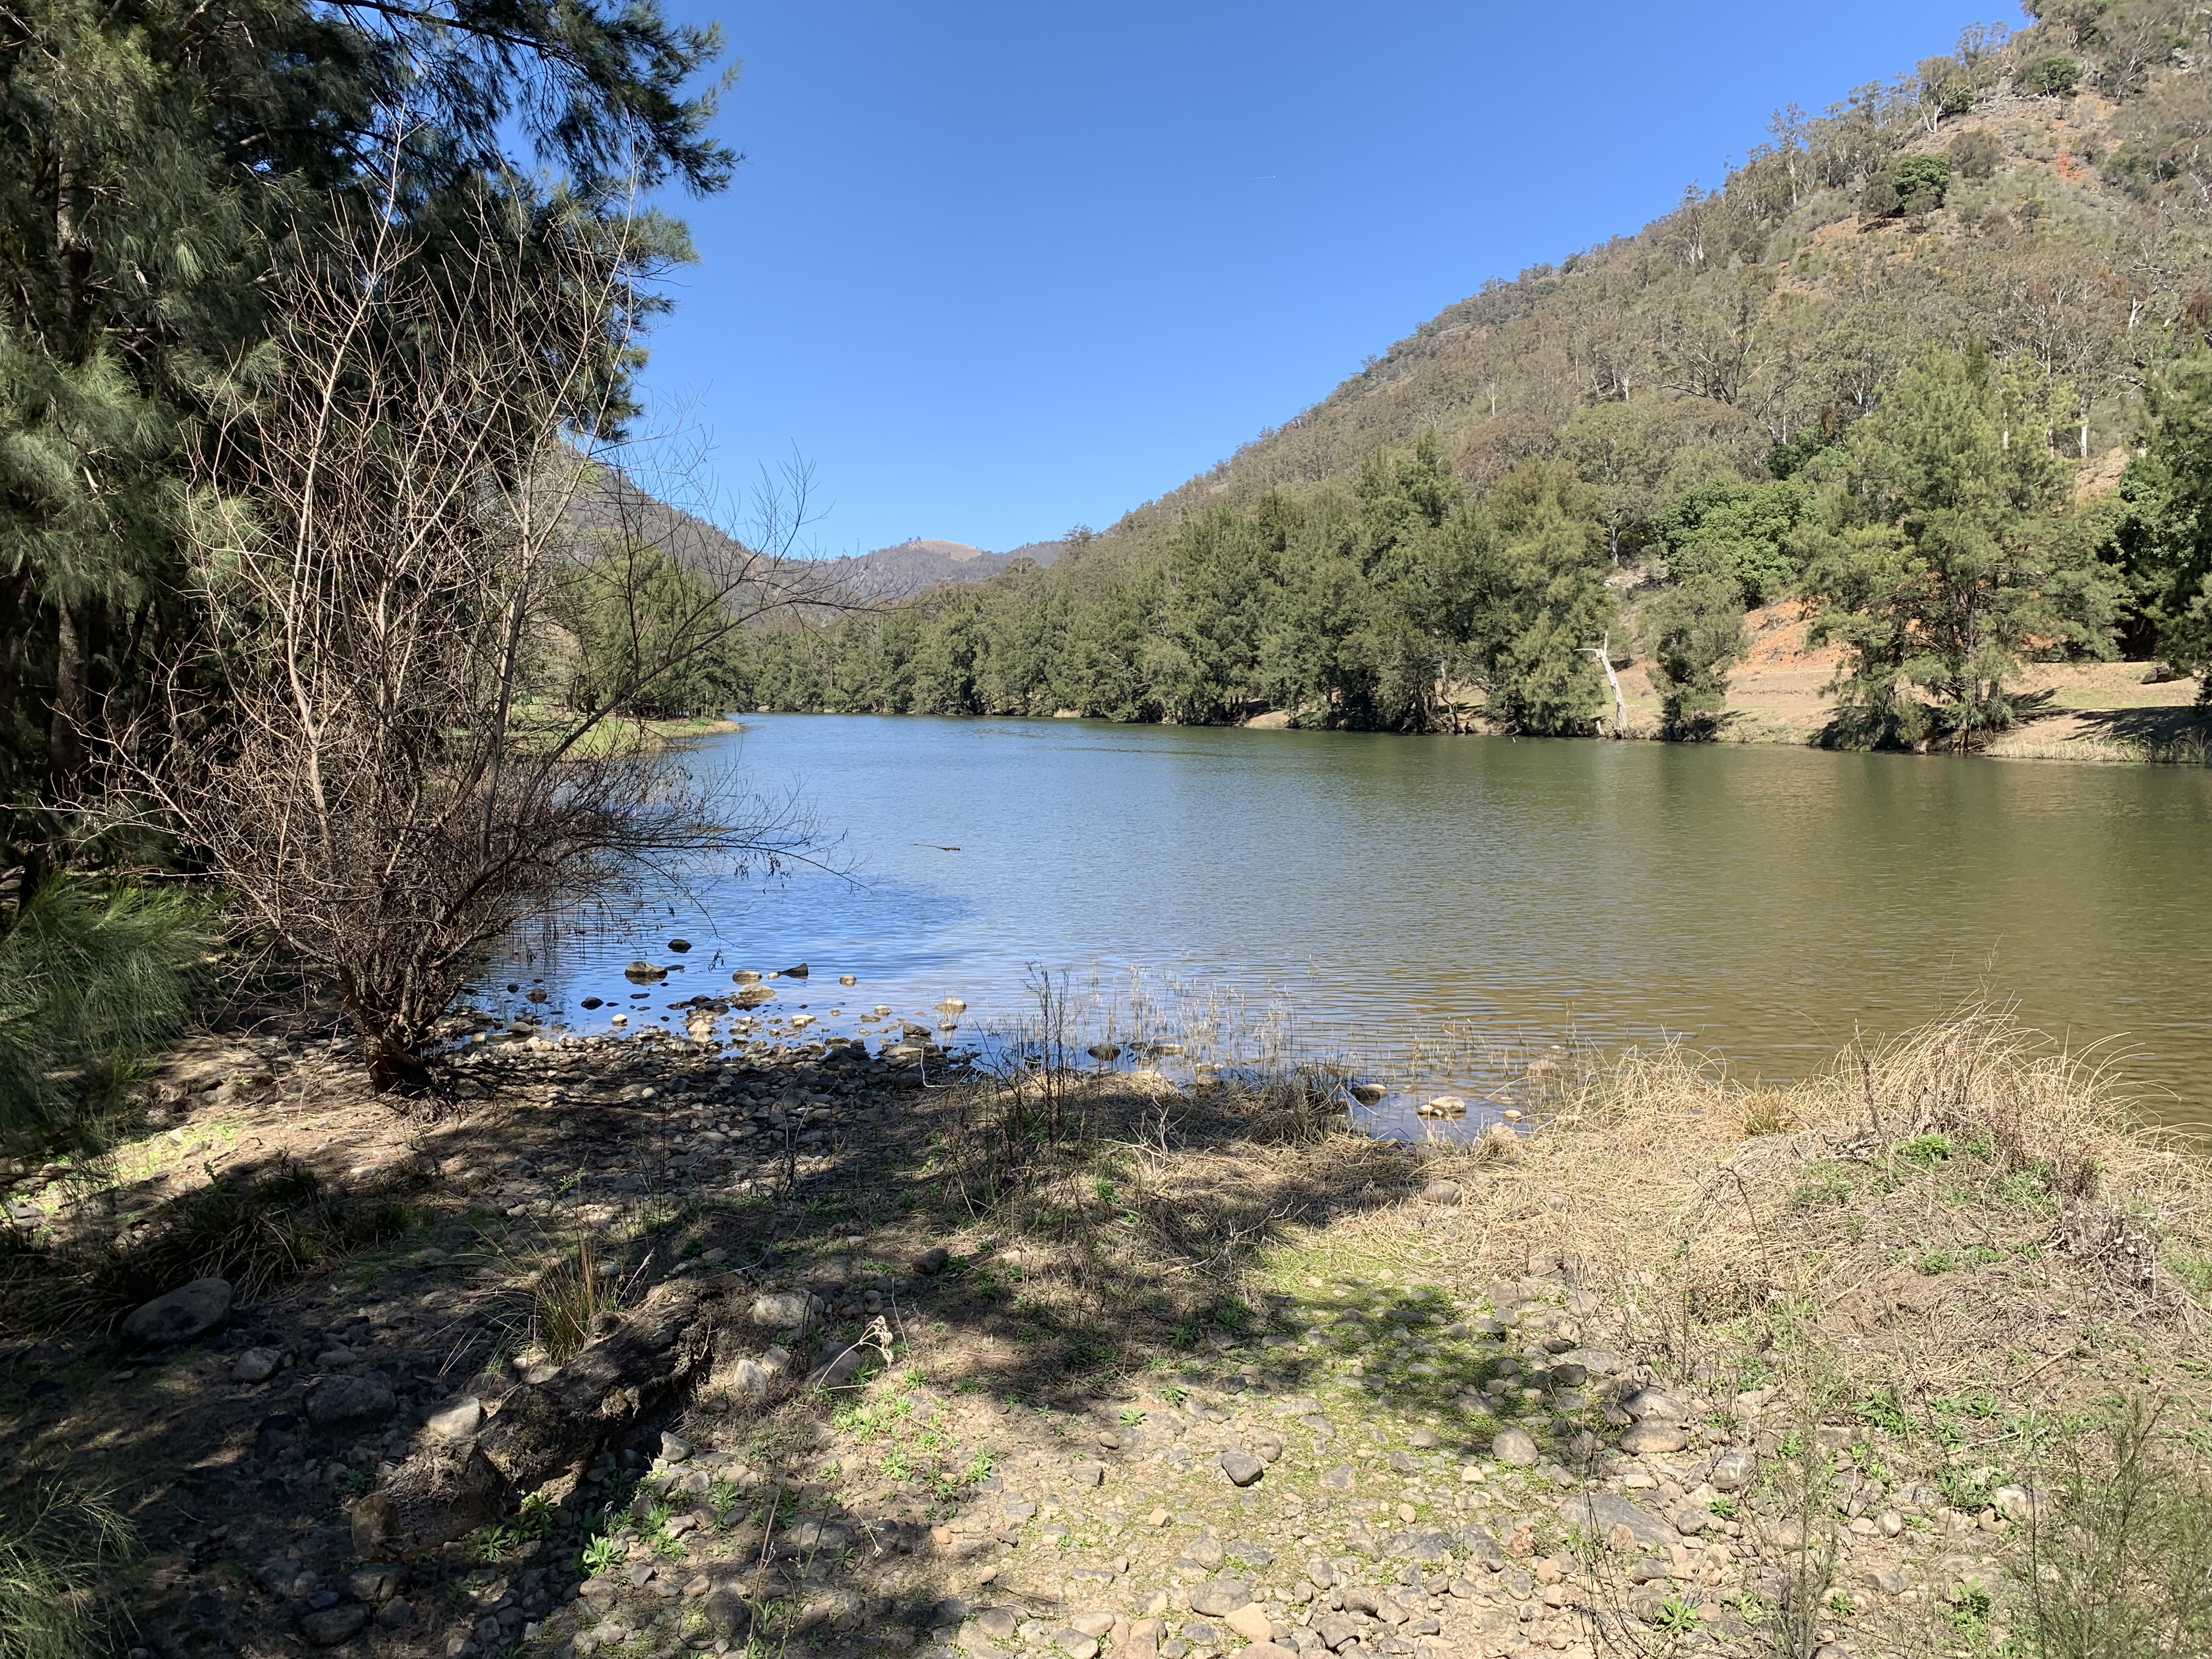 Two days away – Central Tablelands